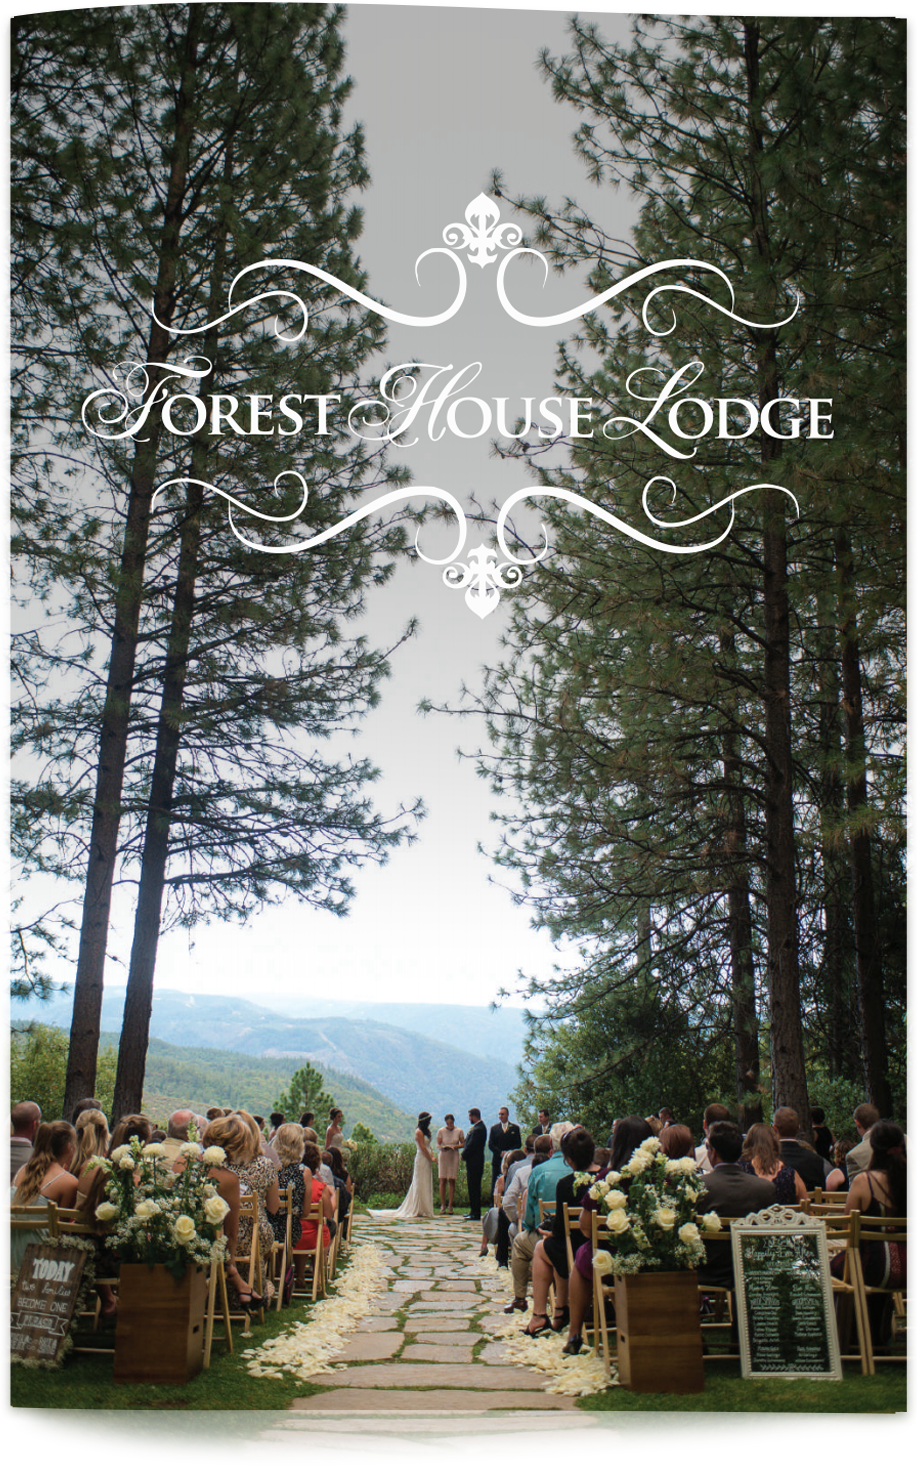 Forest House Lodge | Foresthill, CA